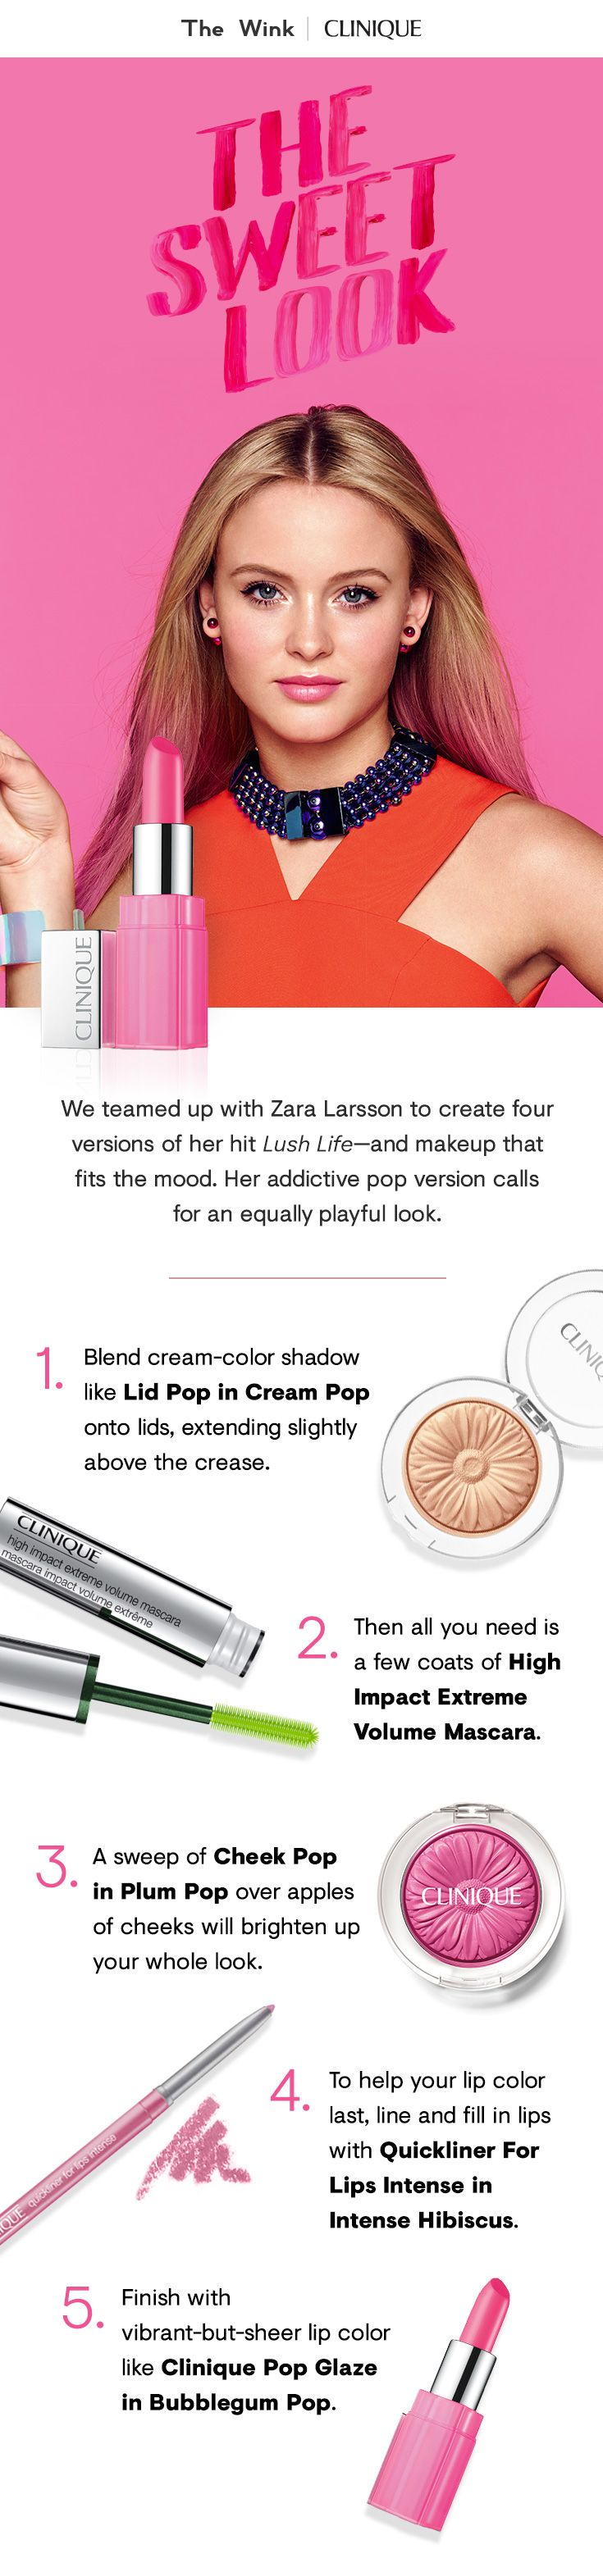 "We teamed up with Zara Larsson to create four versions of her hit ""Lush Life."" Her addictive pop version calls for an equally playful look.  1. Blend Lid Pop in Cream Pop onto lids, extending slightly above the crease.  2. Apply a few coats of High Impact Extreme Volume Mascara.  3. Sweep Cheek Pop in Plum Pop over apples of cheeks.  4. Line and fill in lips with Quickliner For Lips Intense in Intense Hibiscus.  5. Finish with vibrant-but-sheer lip color like Clinique Pop Glaze in Bubblegum…"